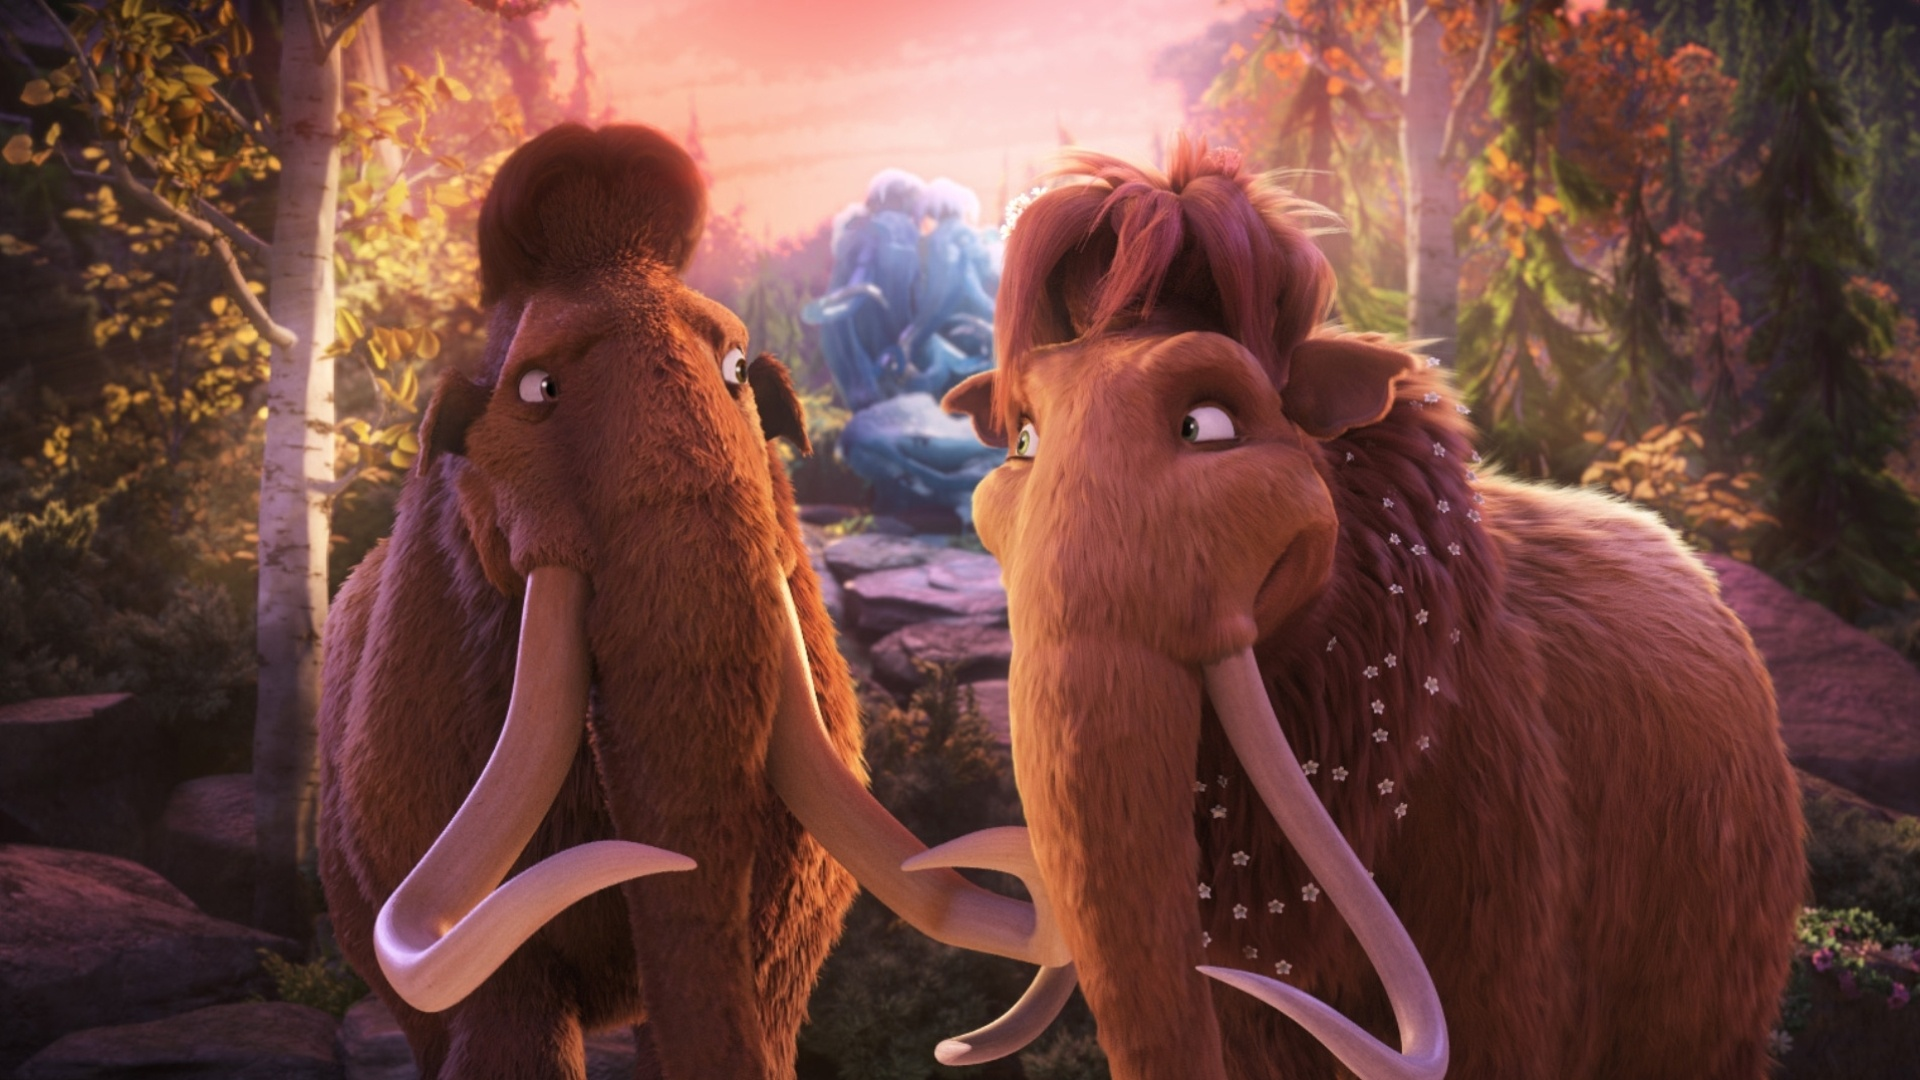 Ice Age Collision Course Movie Wallpapers 1920x1080 510371